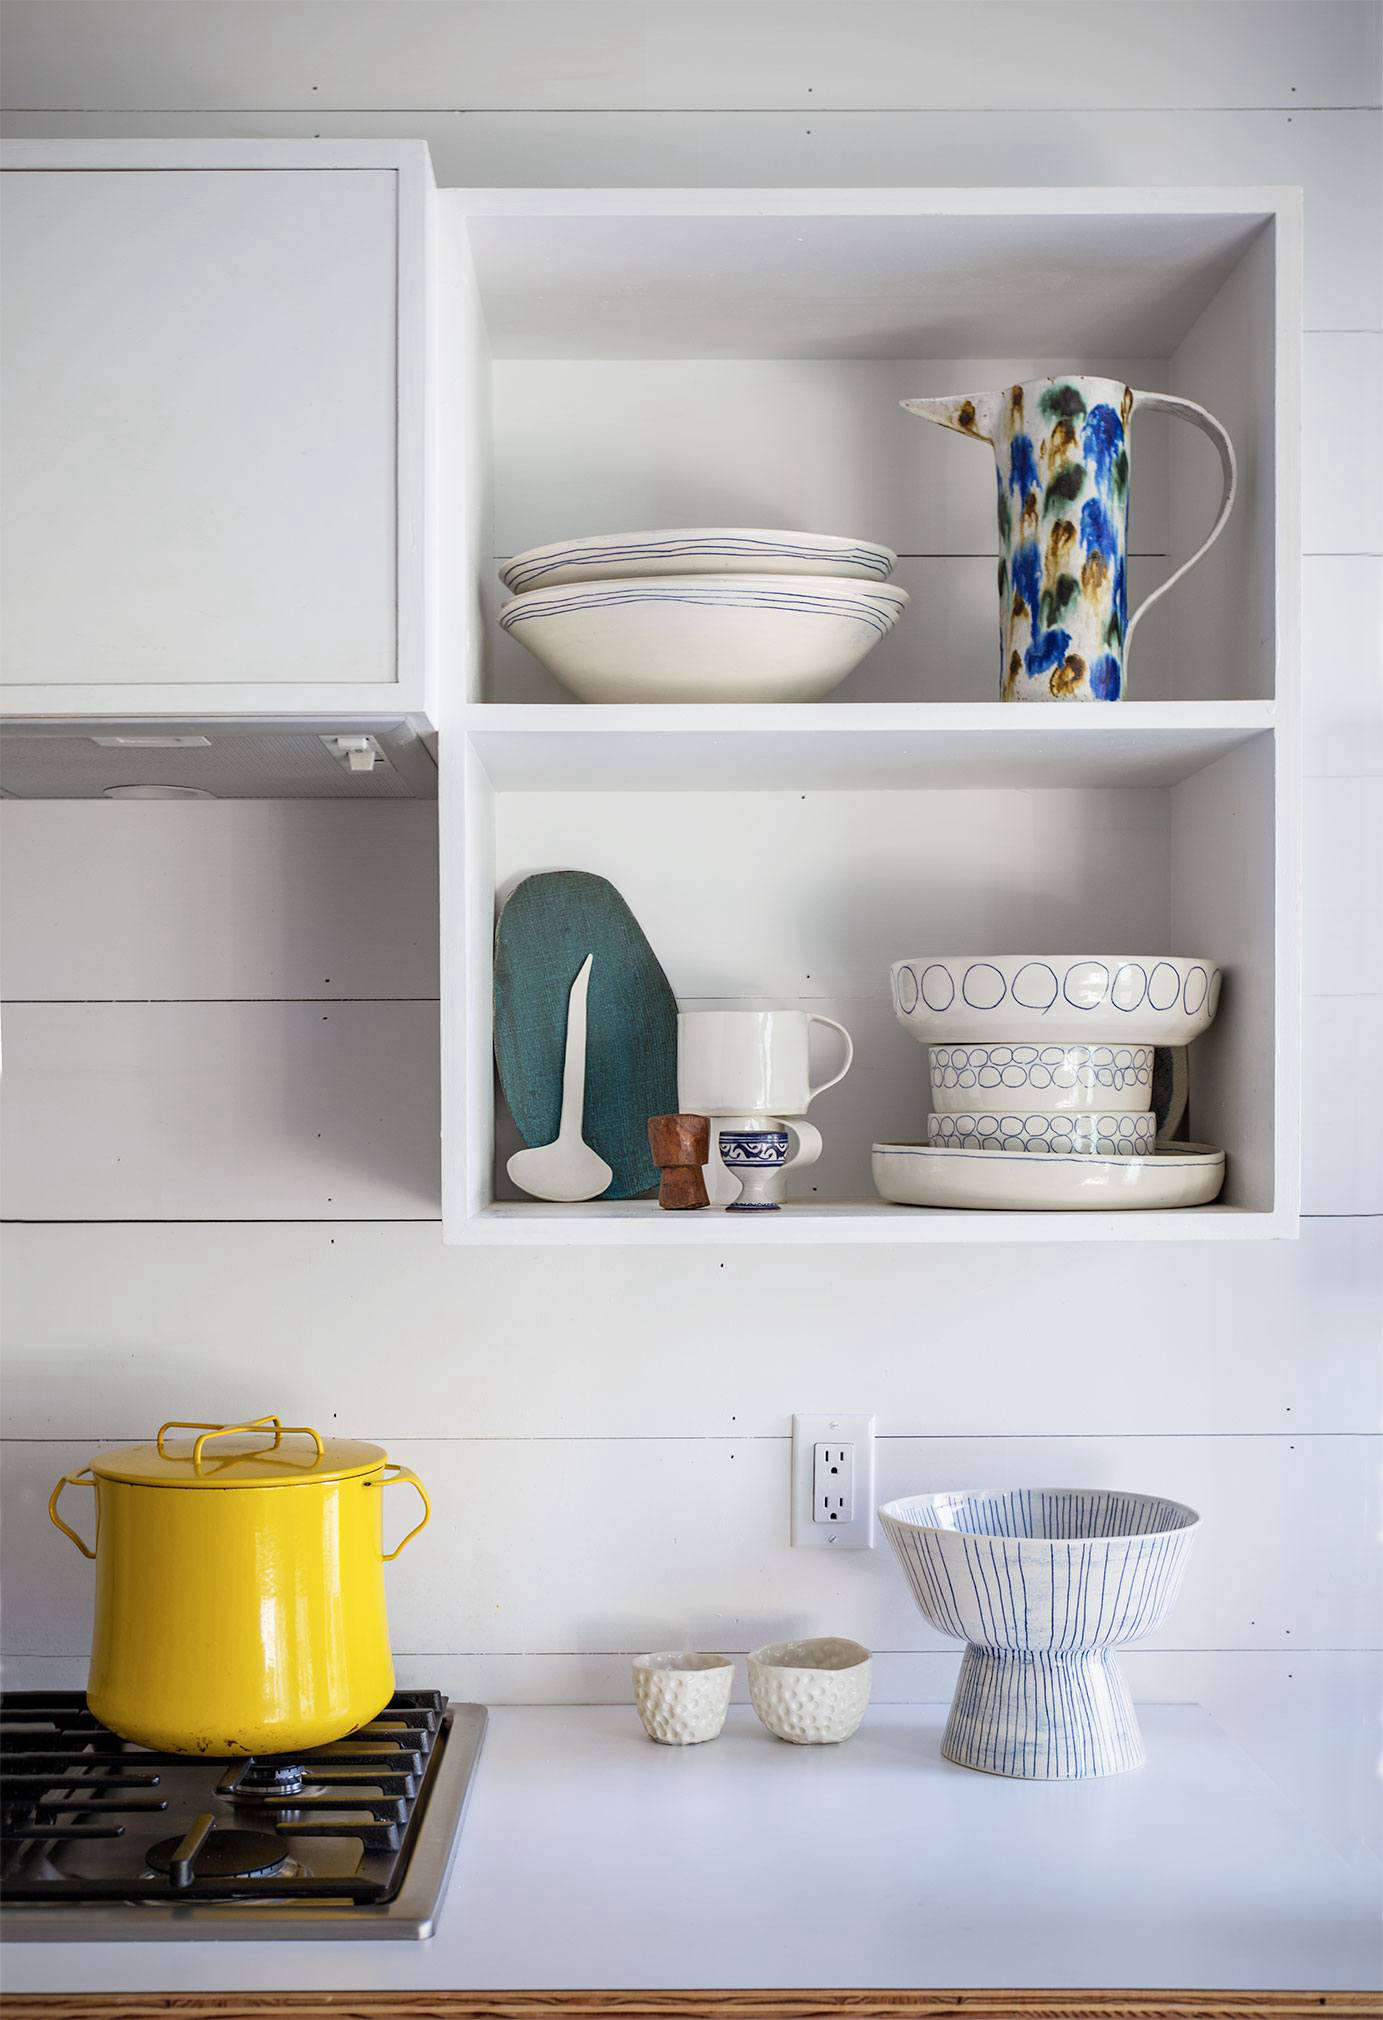 Paula's open shelves provide a place to display her wares.